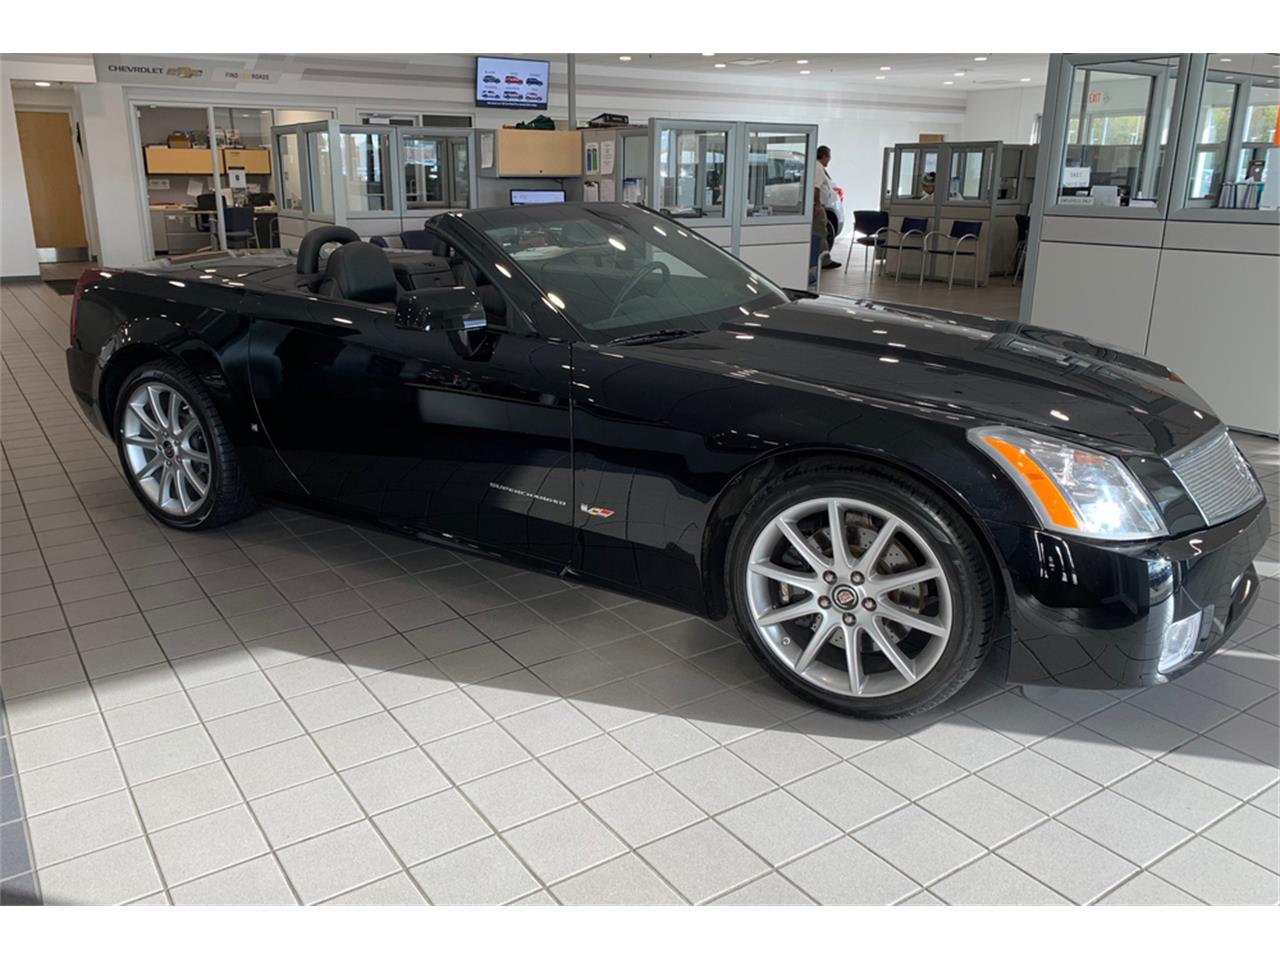 2007 Cadillac XLR-V (CC-1298609) for sale in Scottsdale, Arizona